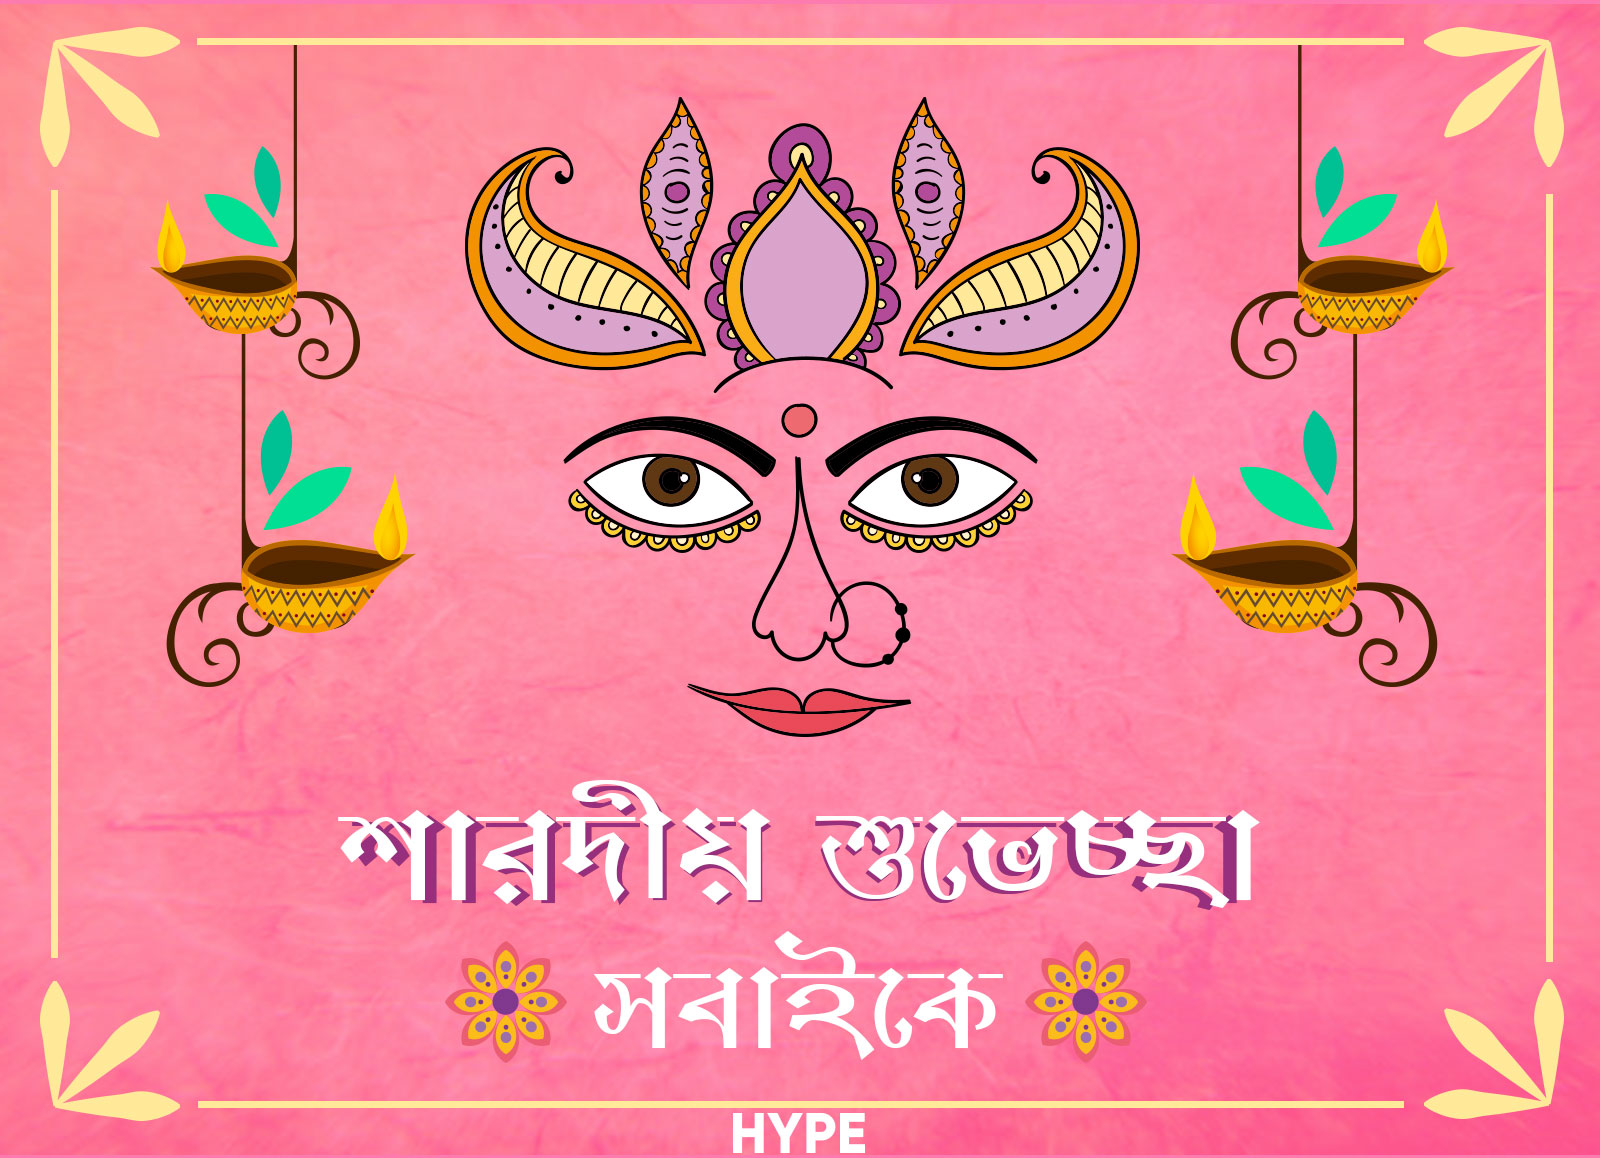 Durga Puja For Greeting For Hype Digital Croovs Community Of